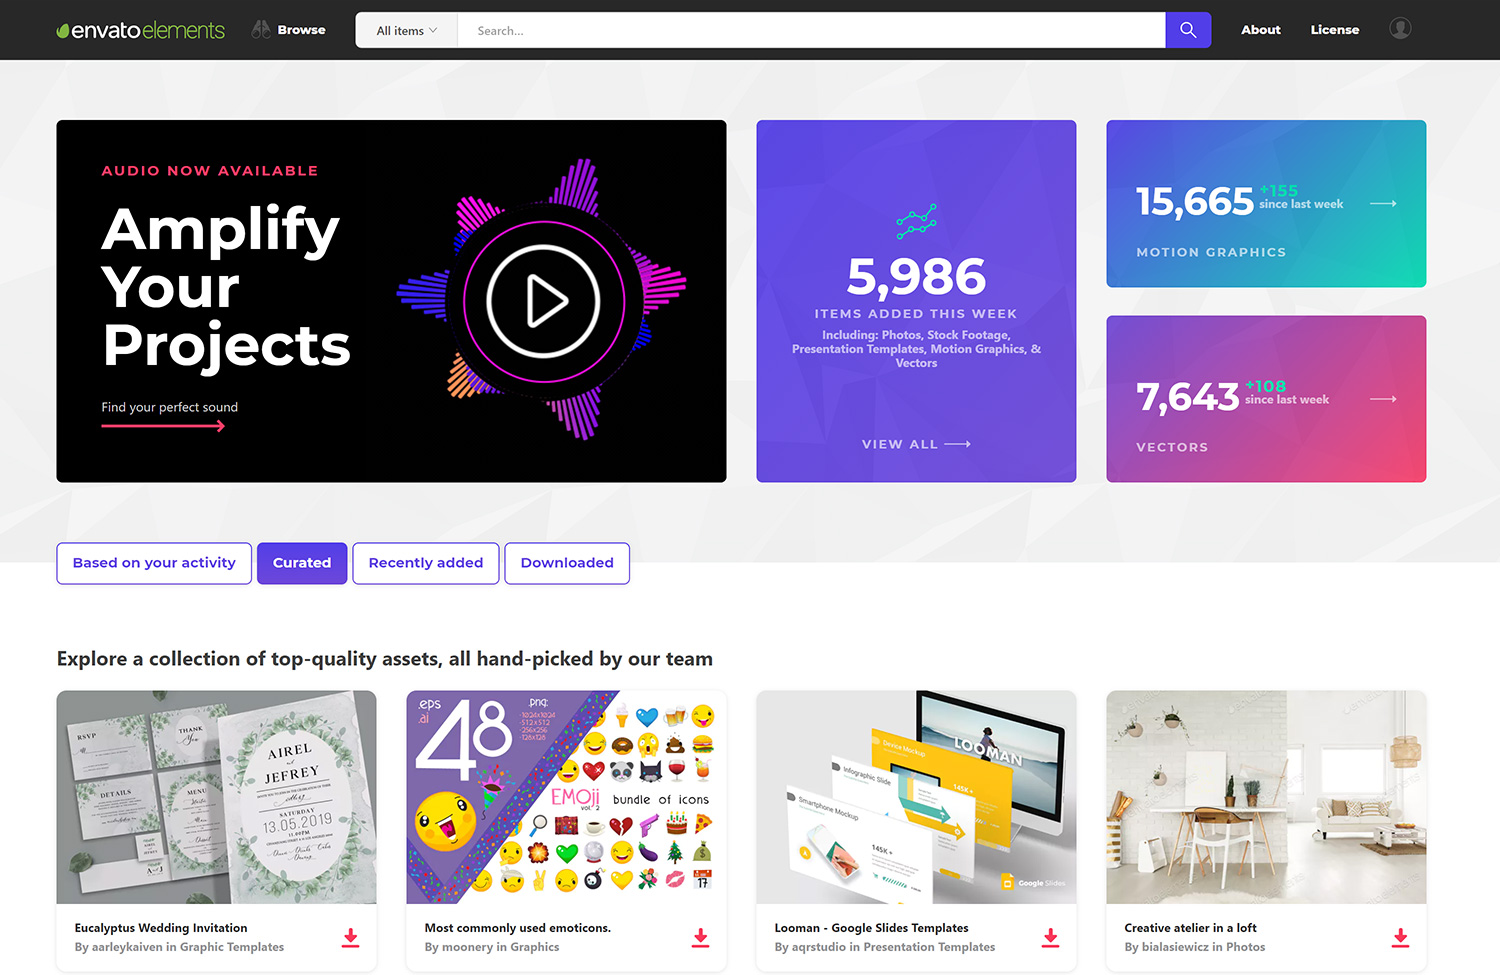 envato elements the ultimate creative digital asset subscription service